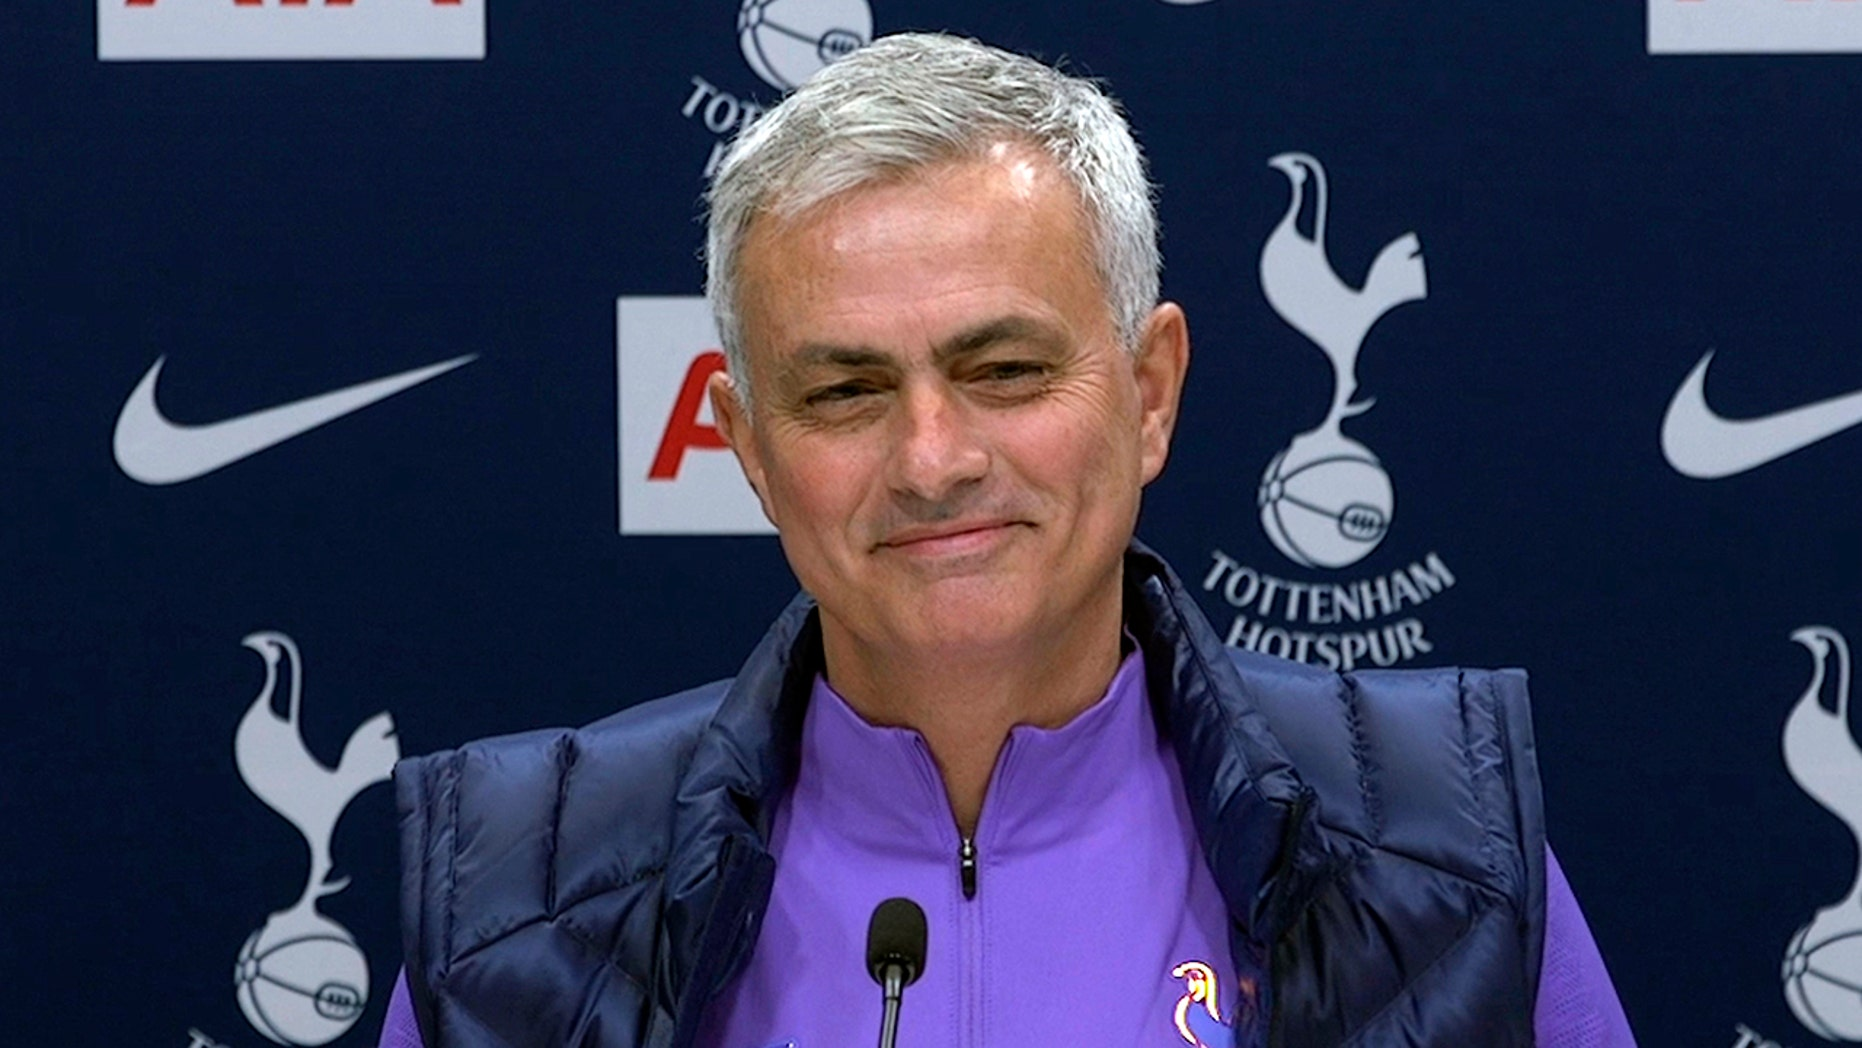 Image taken from PA Video showing newly appointed Tottenham Hotspur manager Jose Mourinho during a press conference at Tottenham Hotspur Training Centre, in London, Thursday Nov. 21, 2019. Mourinho is back in the English Premier League management by joining Tottenham. (PA Video/PA via AP)